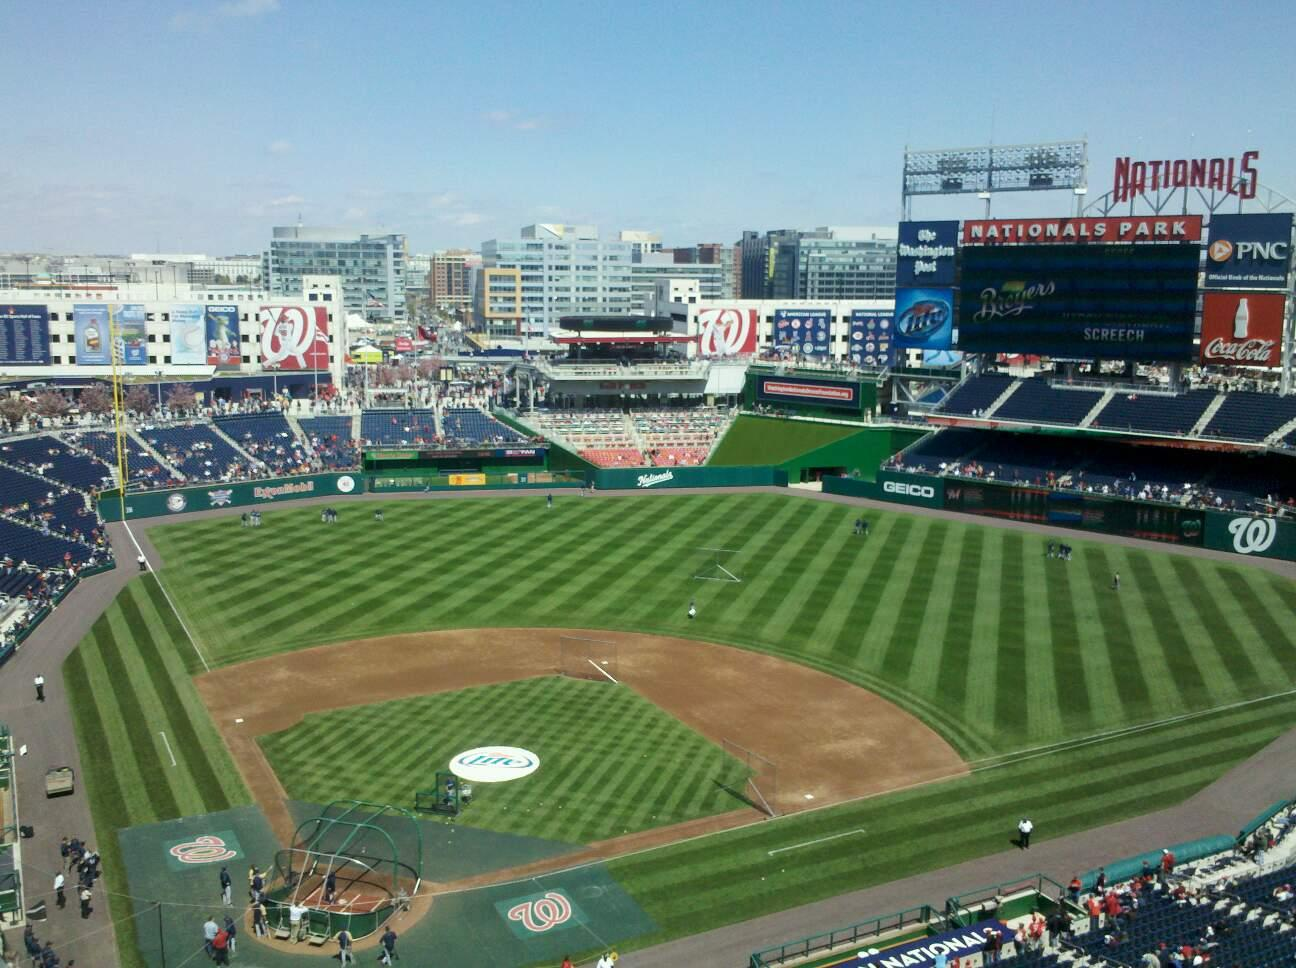 Nationals Park Section 416 Row A Seat 19